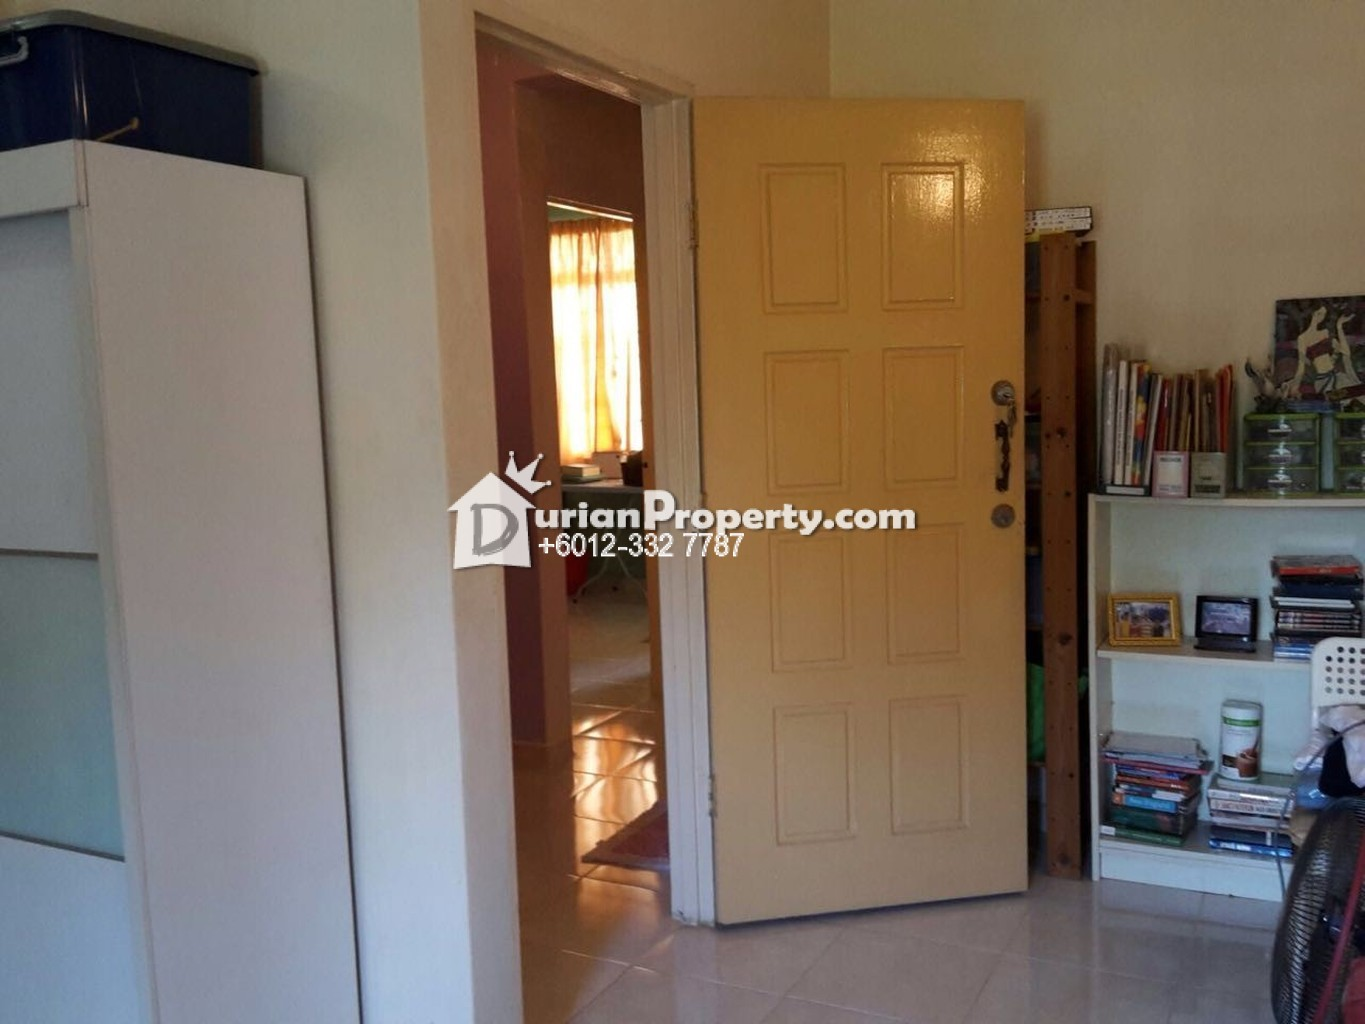 Terrace House For Sale At USJ  USJ For RM  By Chris Lee - Usj 1 location map